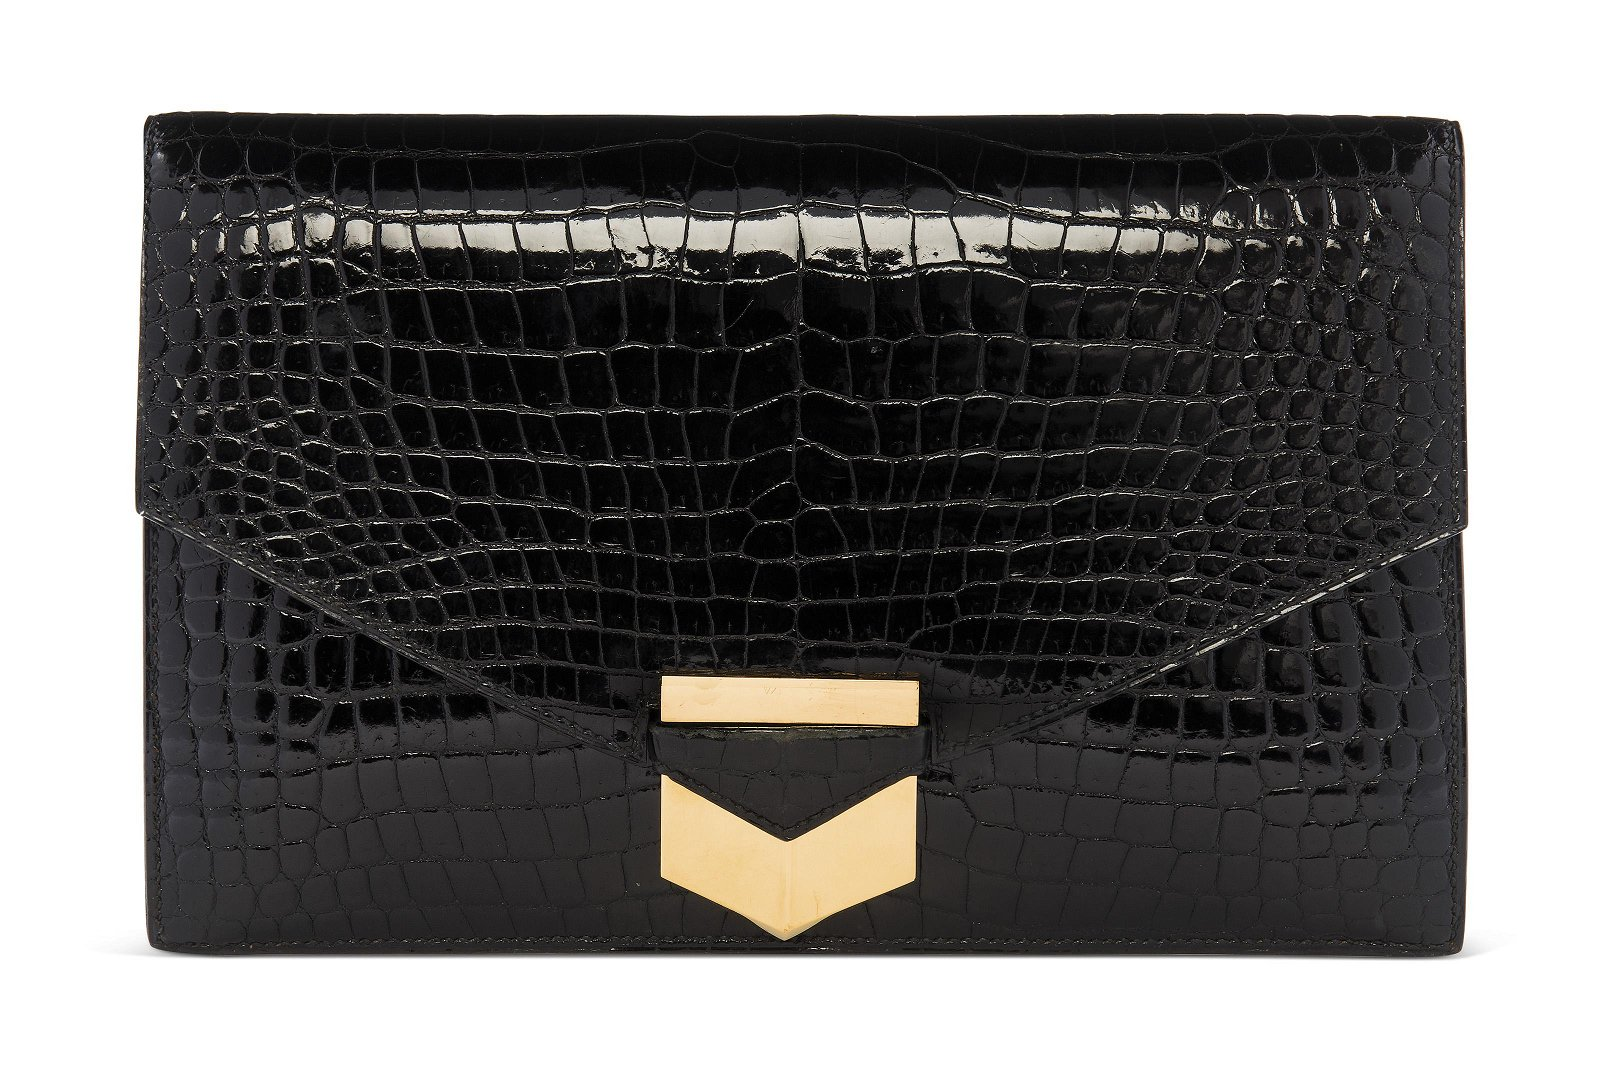 A SHINY BLACK POROSUS CROCODILE PAN CLUTCH WITH GOLD